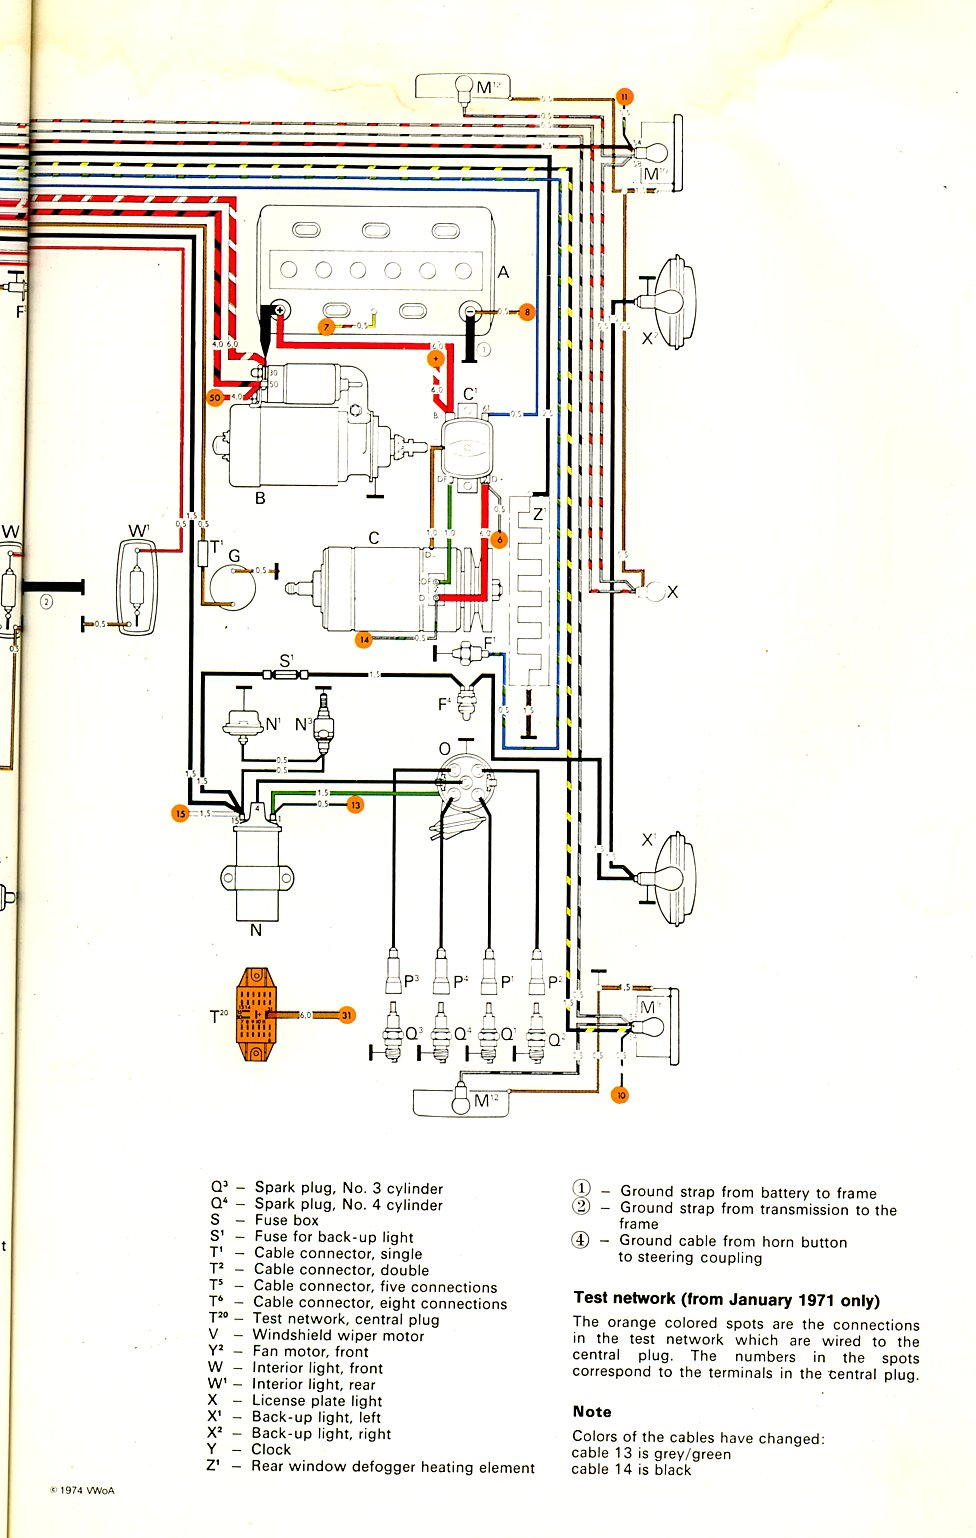 Baybus B on 1970 Vw Bus Parts Diagram